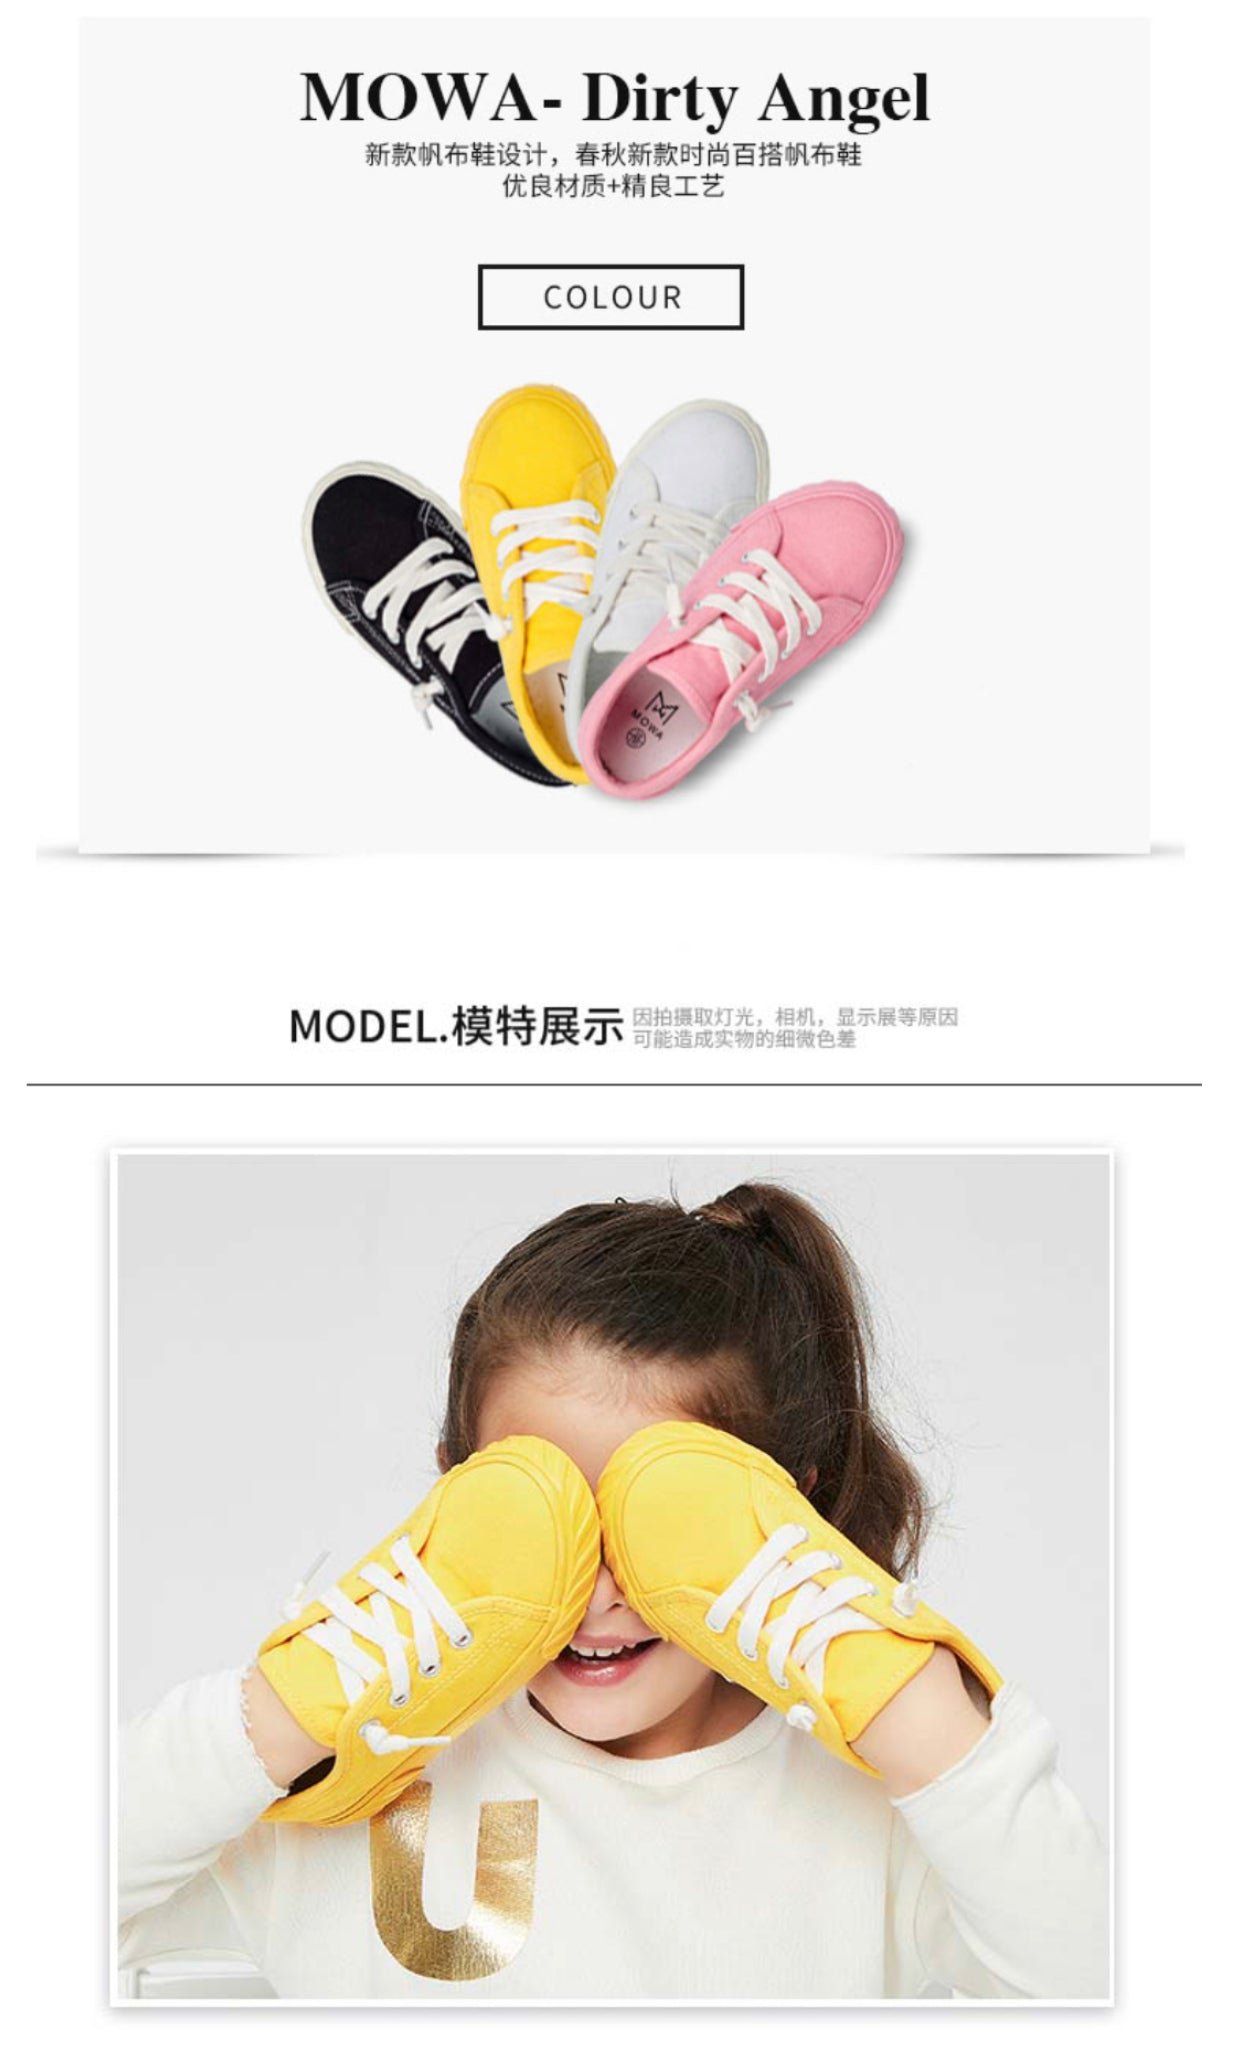 MOWA Dirty-Angel Canvas Sneakers for Kids